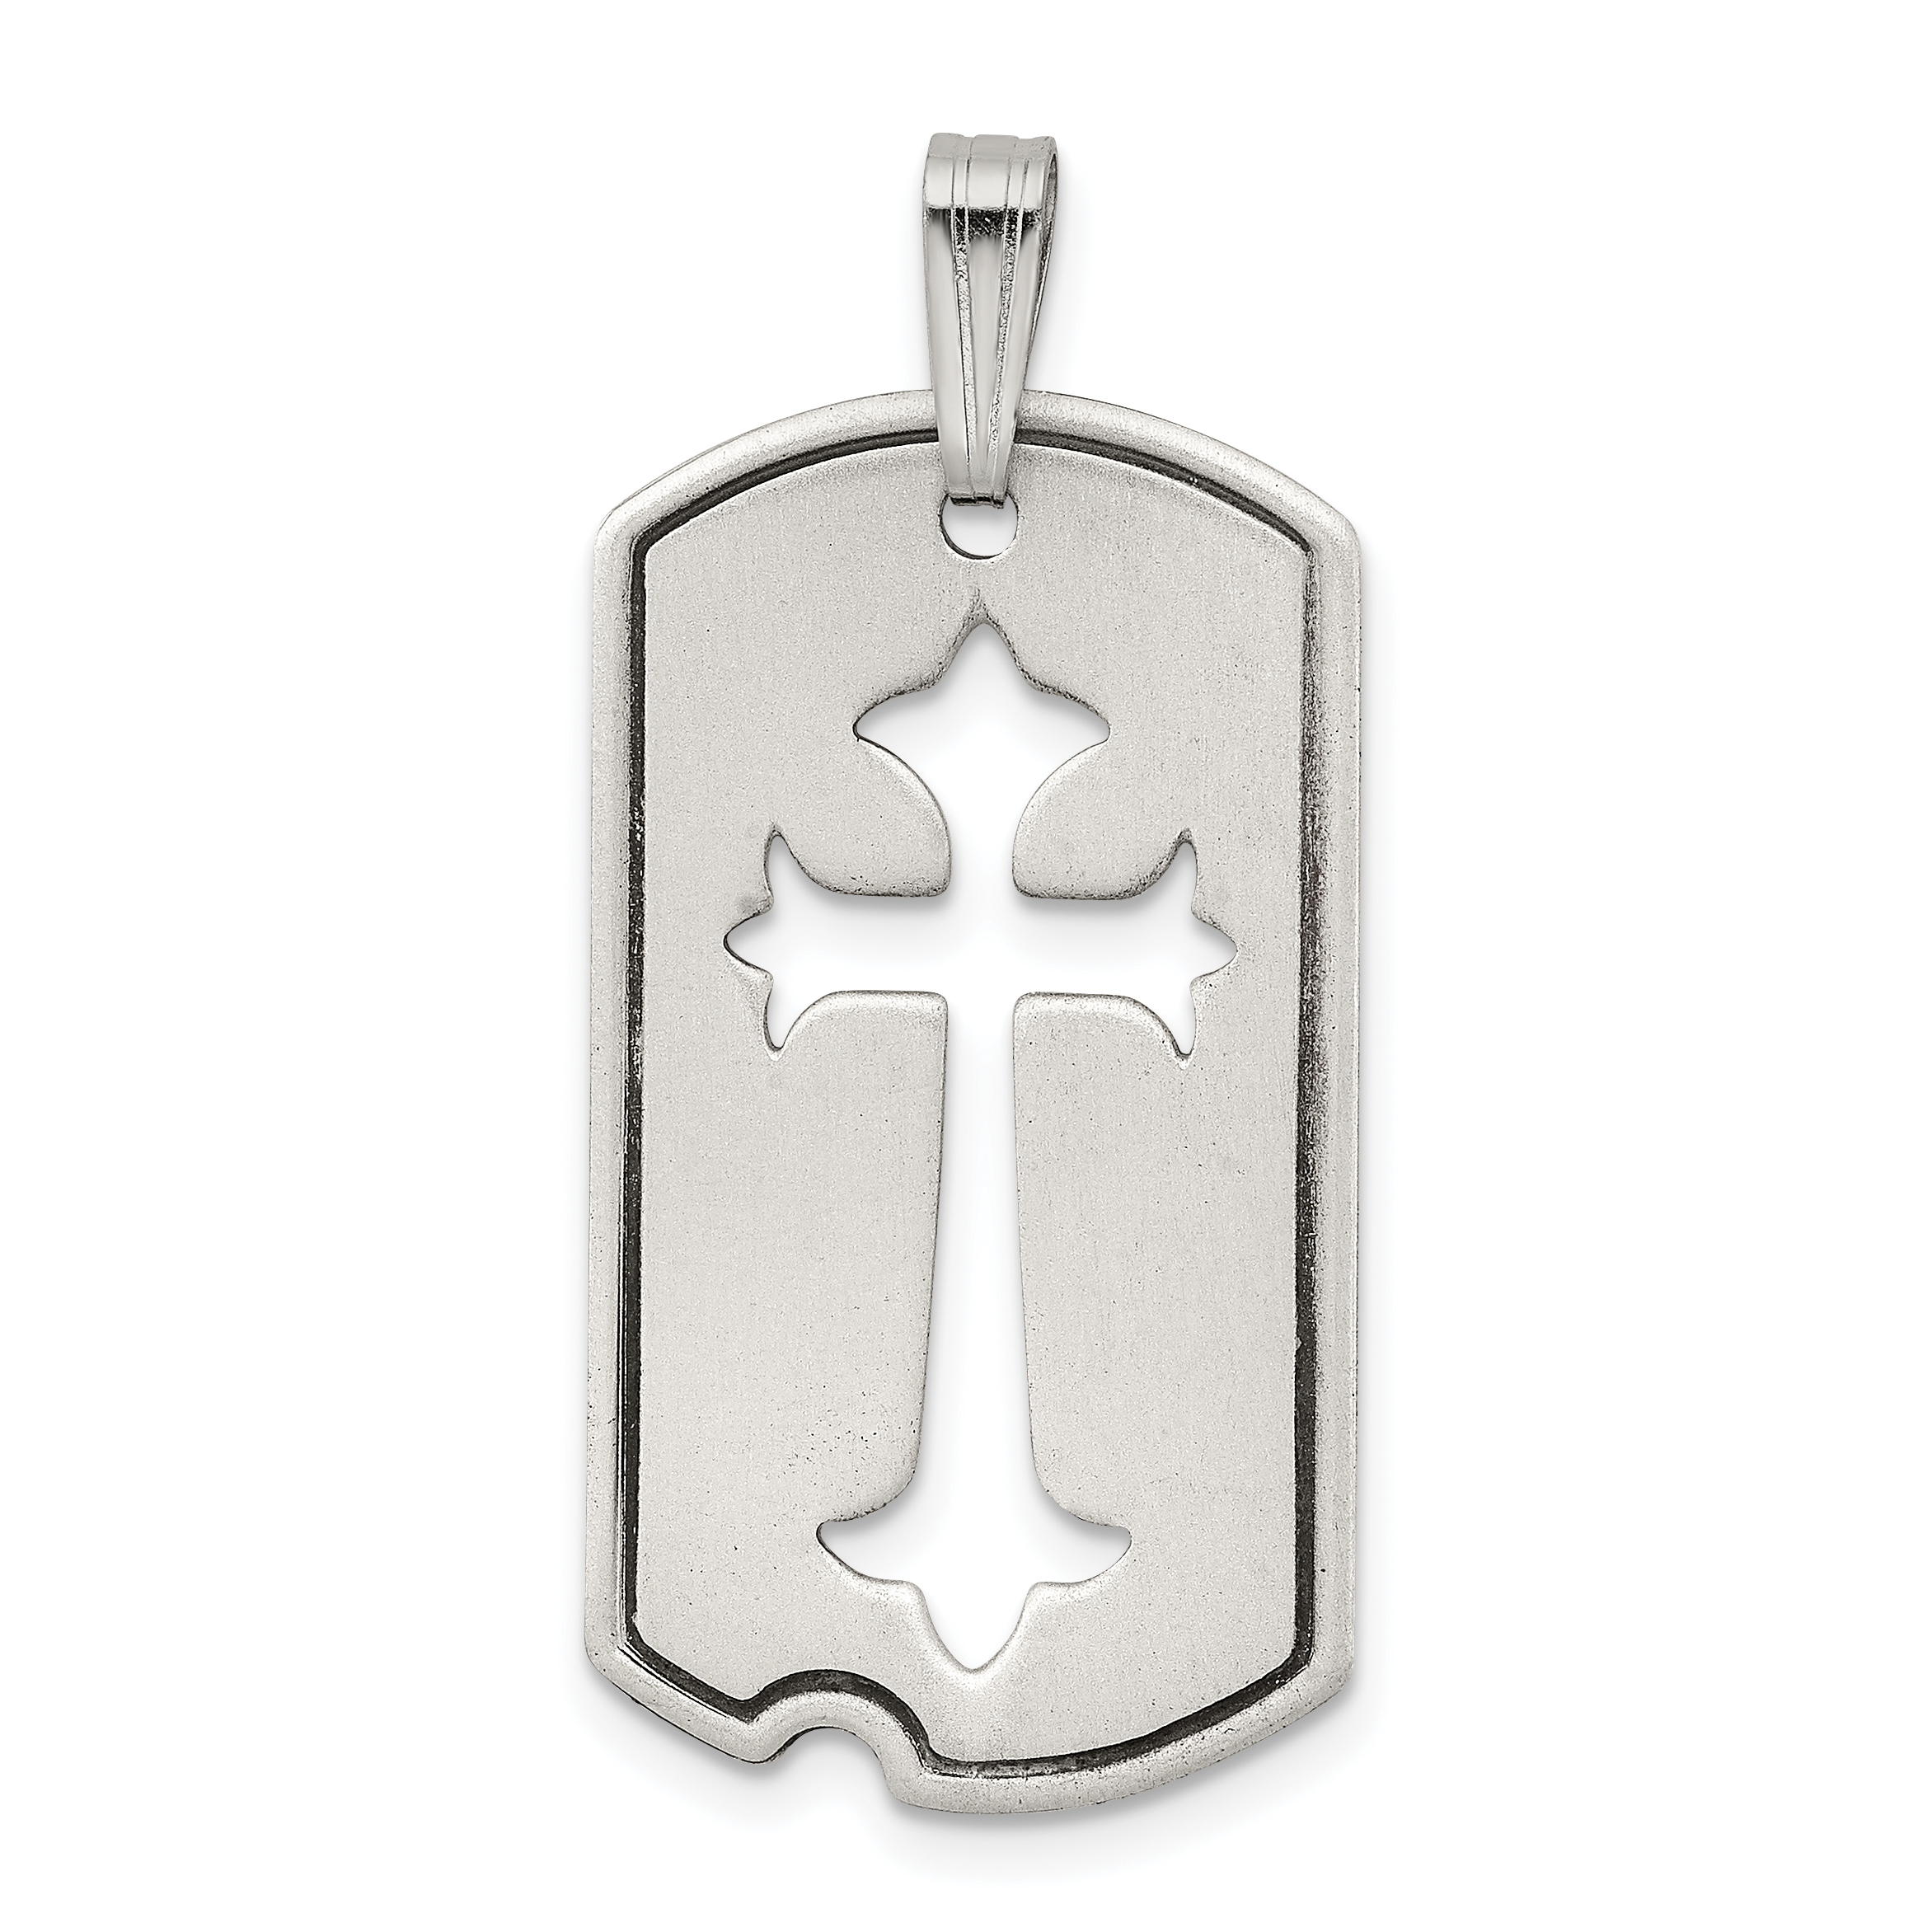 Sterling silver satin antiqued dog tag with cut out cross pendant sterling silver satin antiqued dog tag with cut out cross pendant weight 336 grams length 38mm width 16mm aloadofball